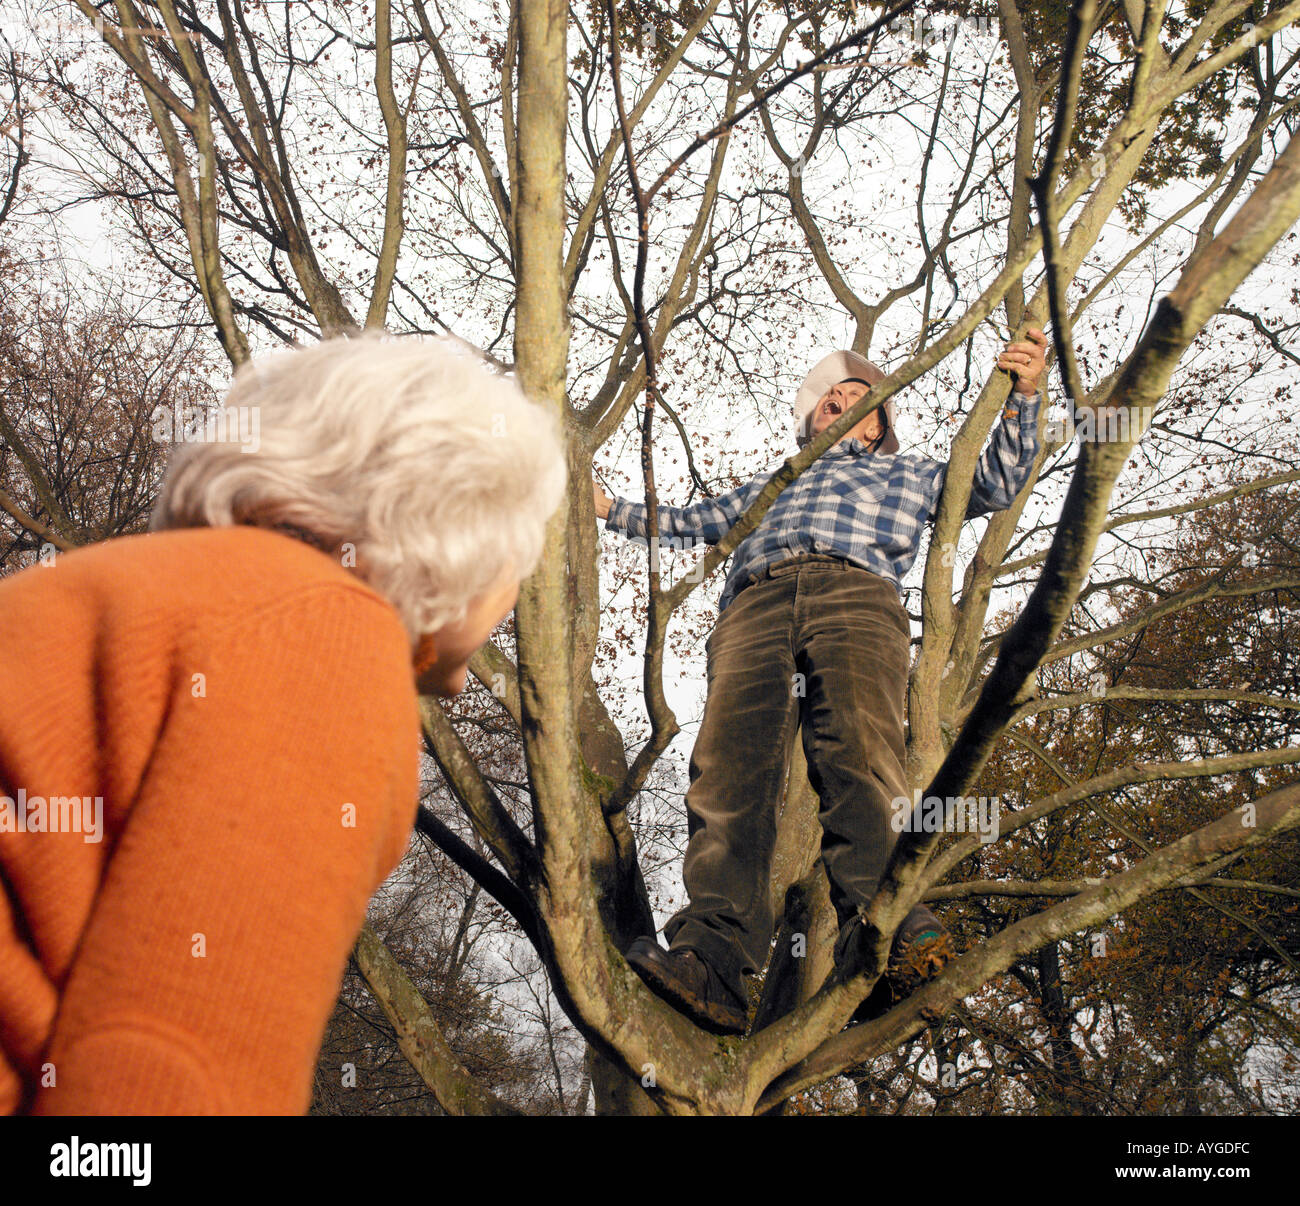 elderly male up a tree being watched by elderly female from below - Stock Image